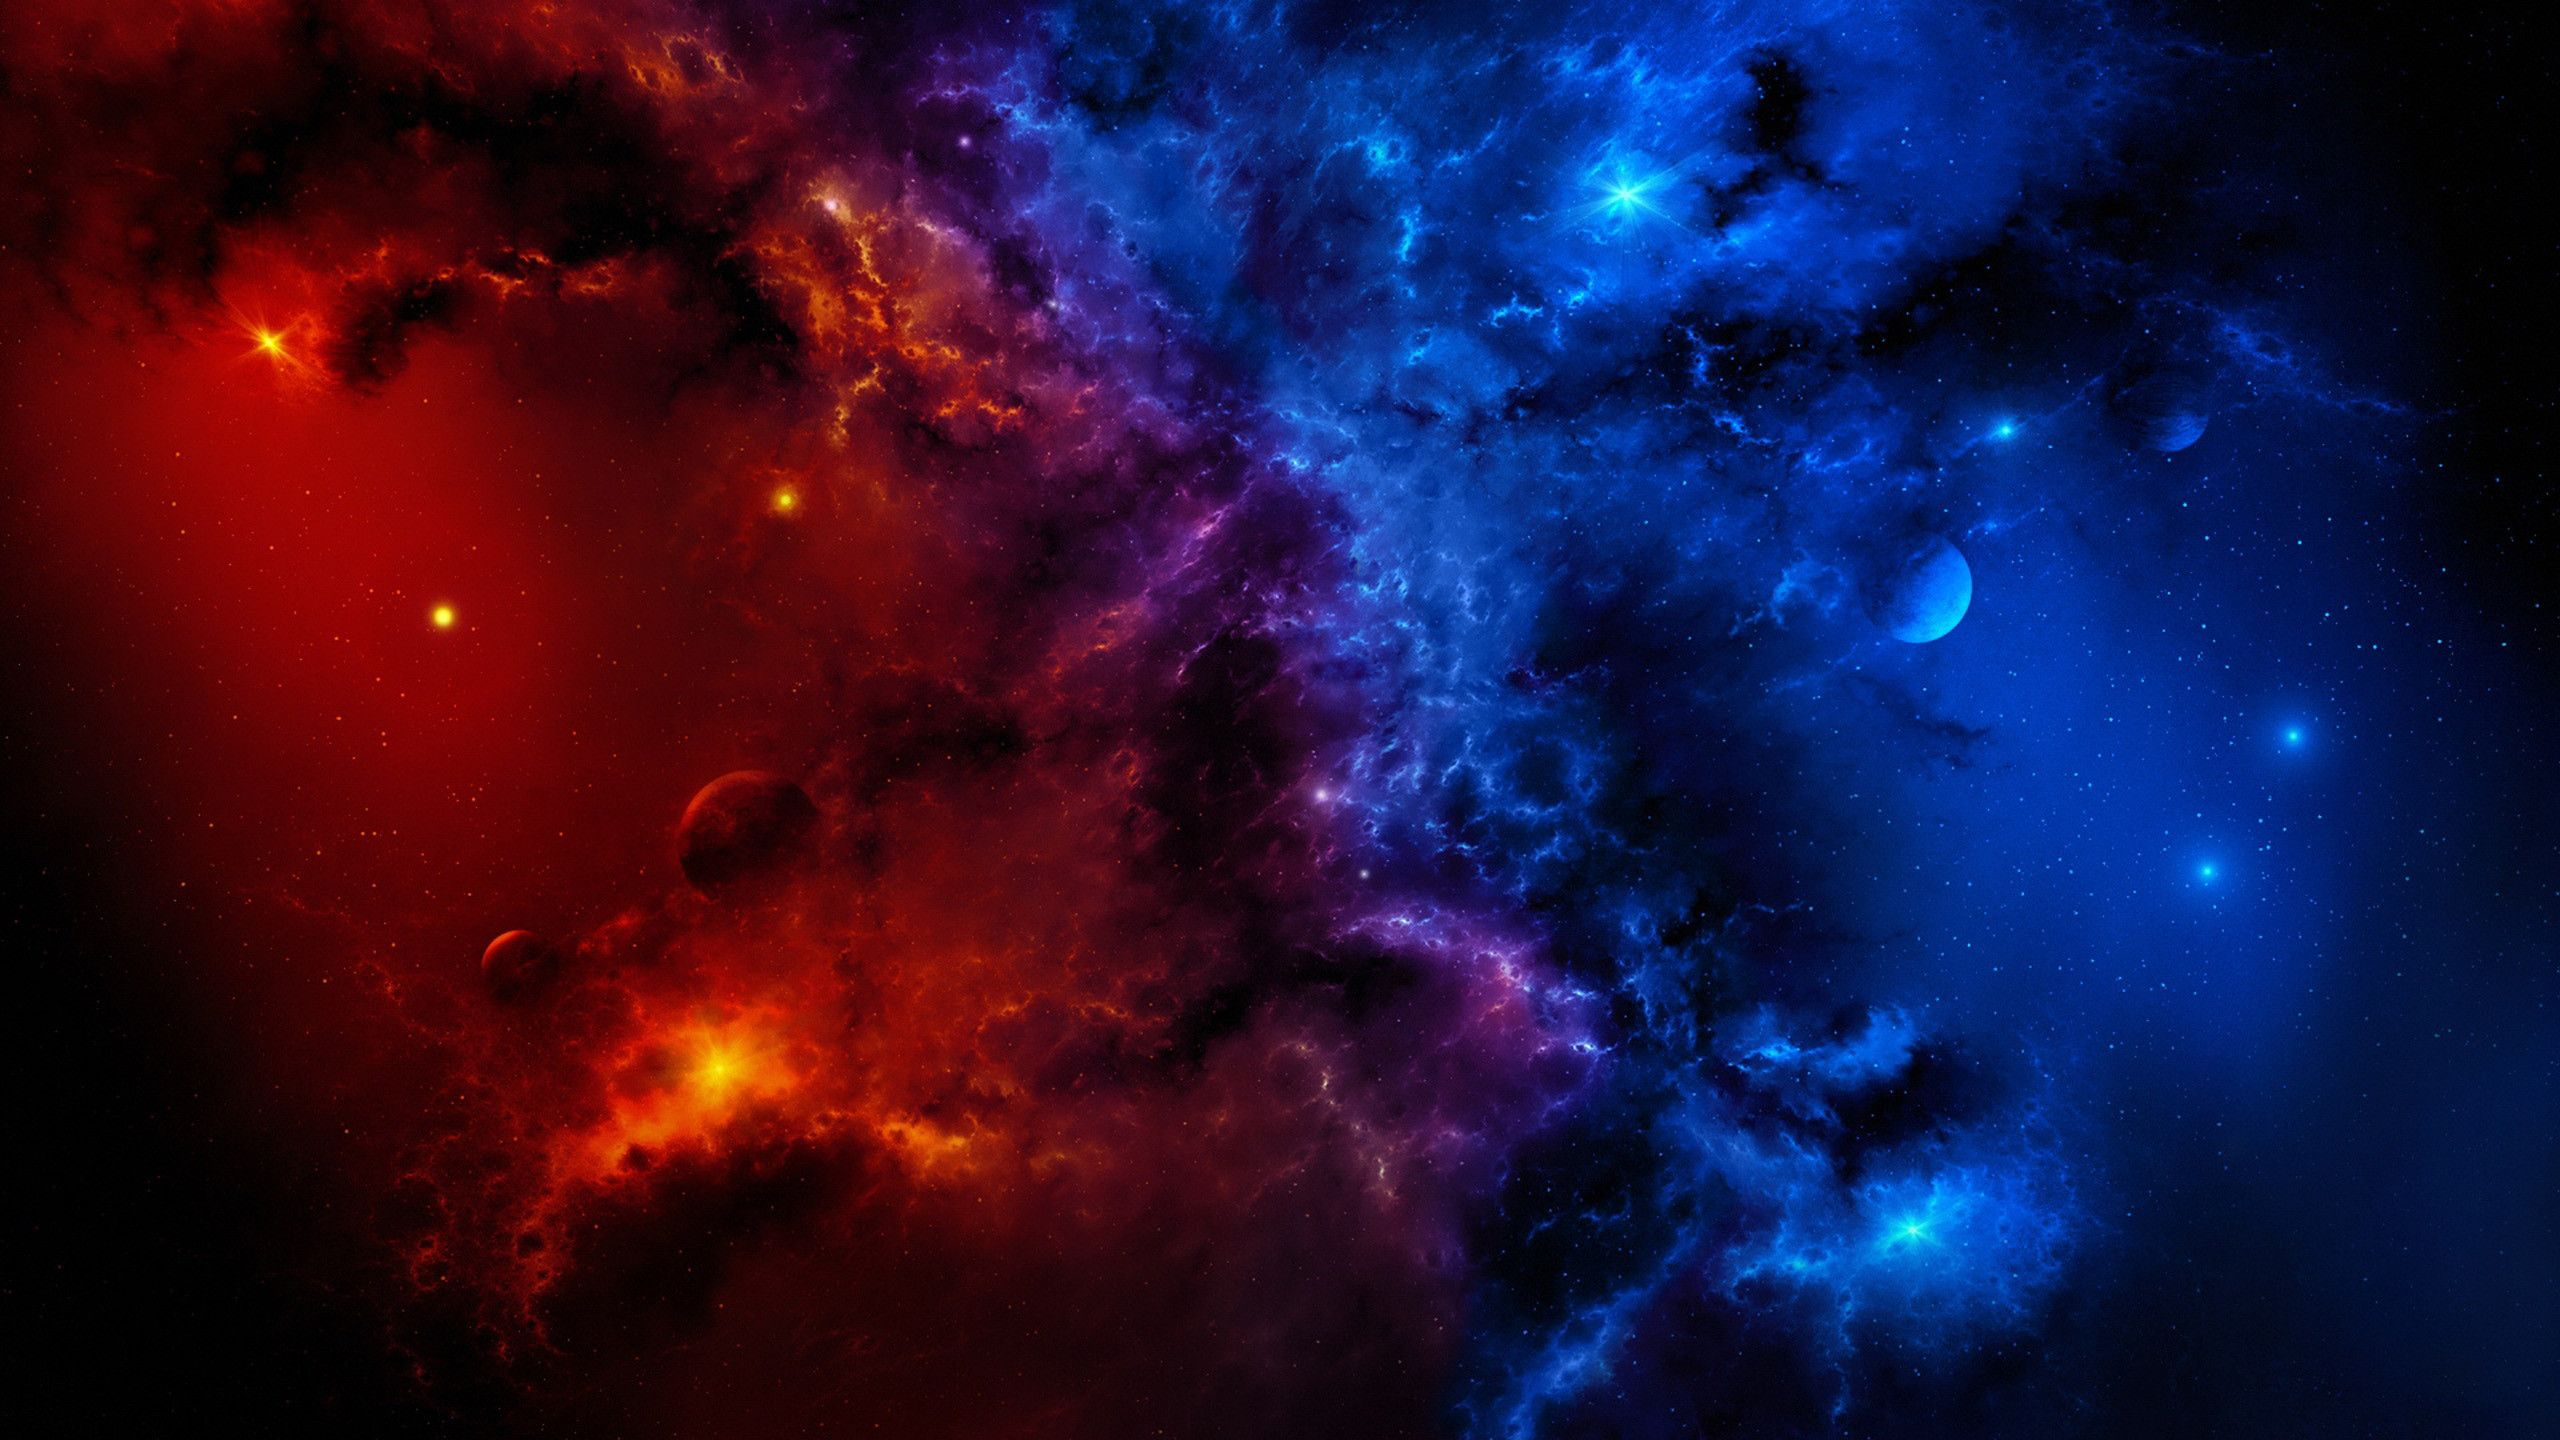 2560x1440 Red And Blue Galaxy Wallpaper Hd